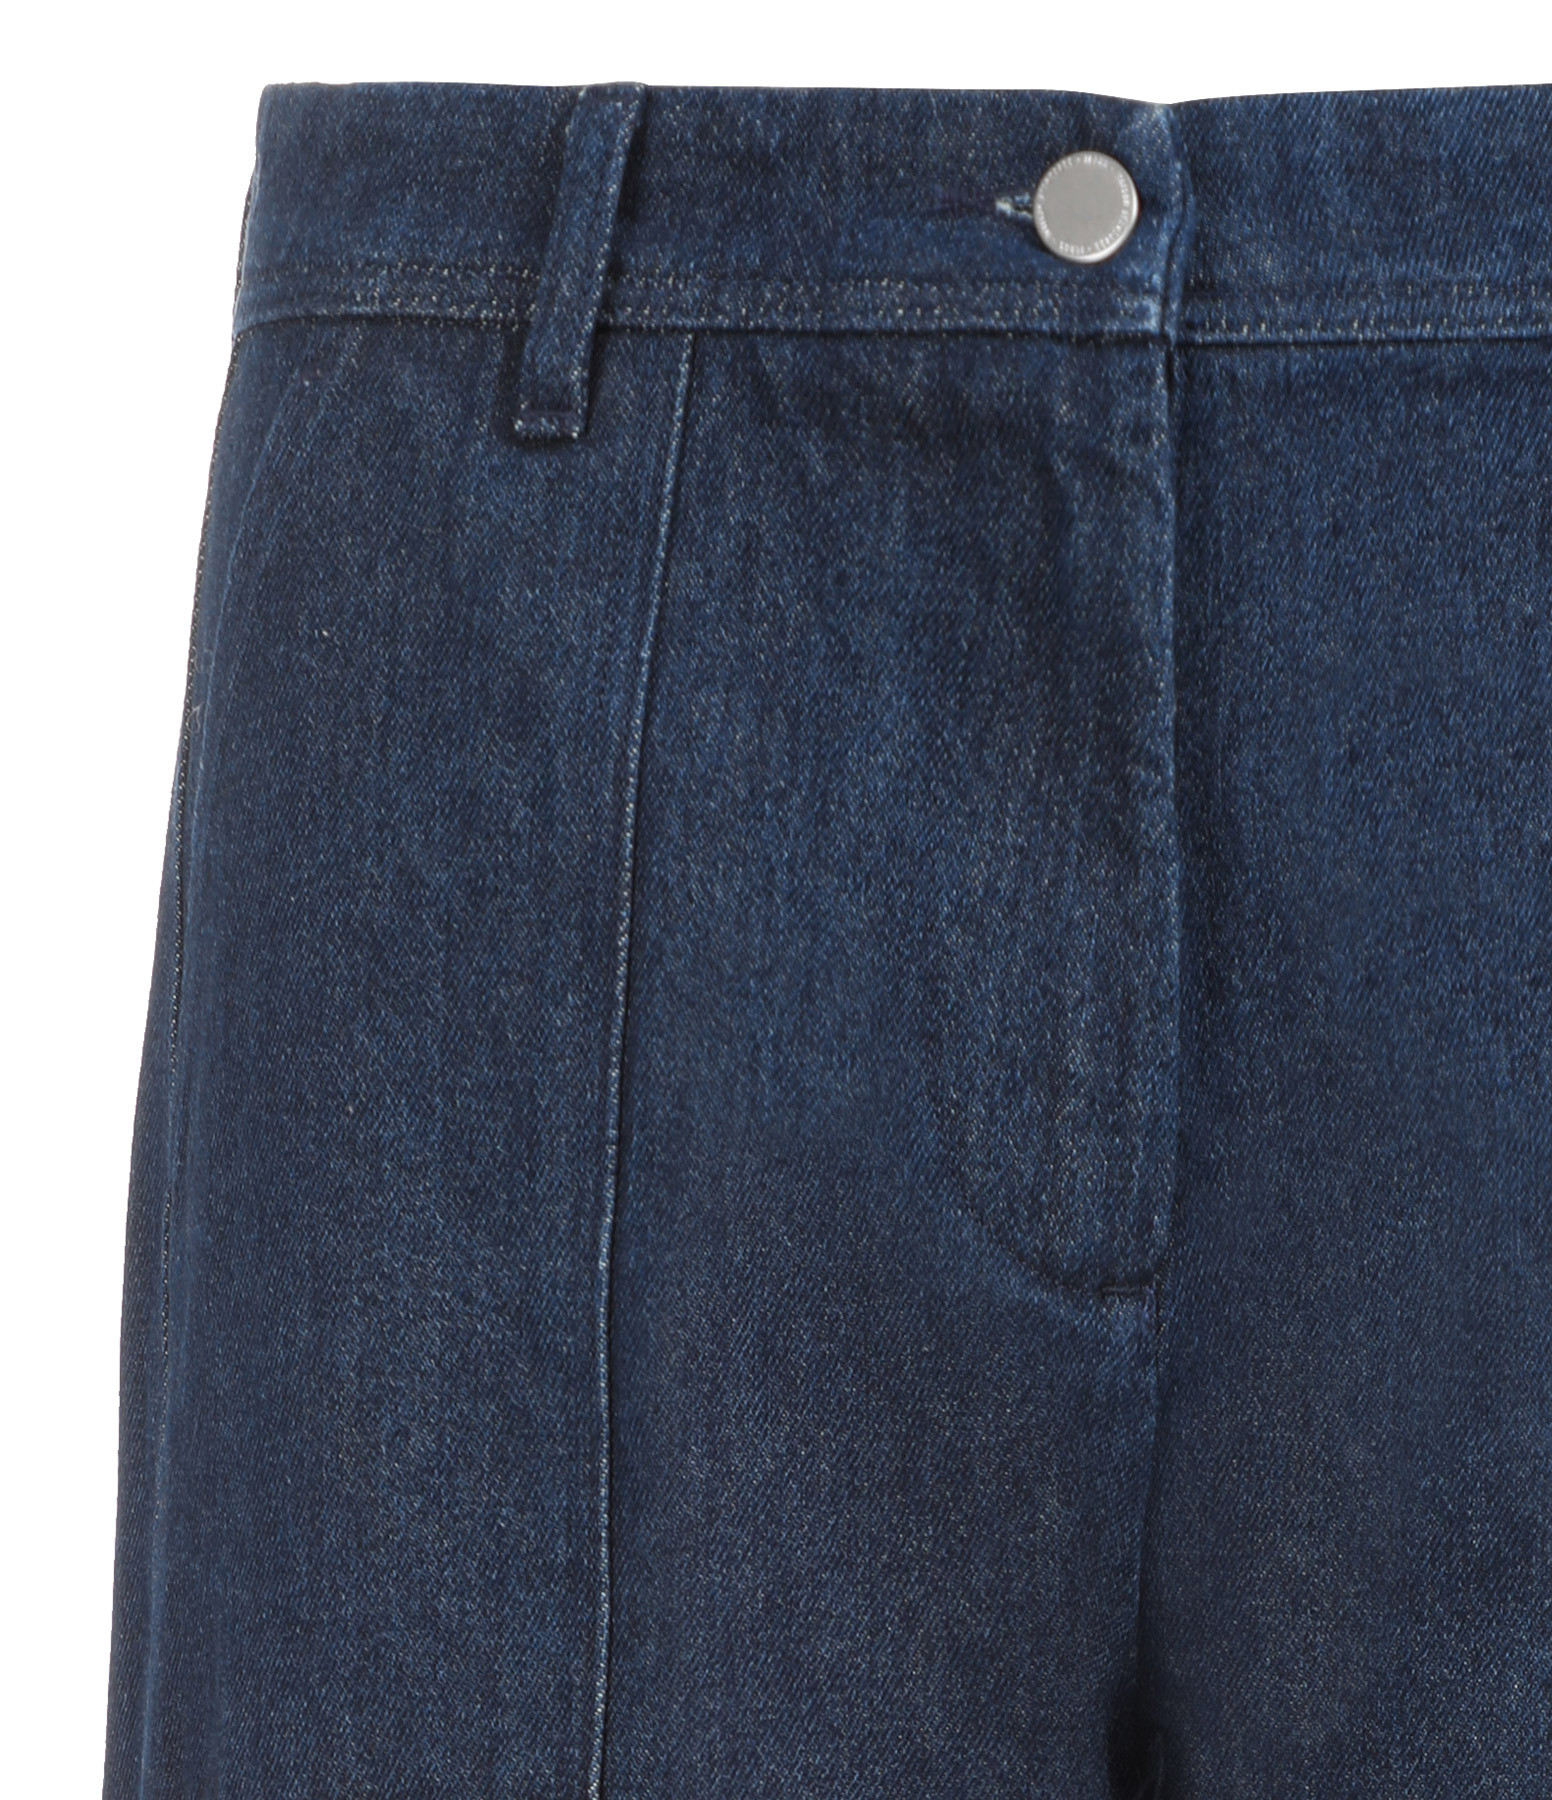 MAISON STANDARDS - Pantalon Worker Denim Bleu